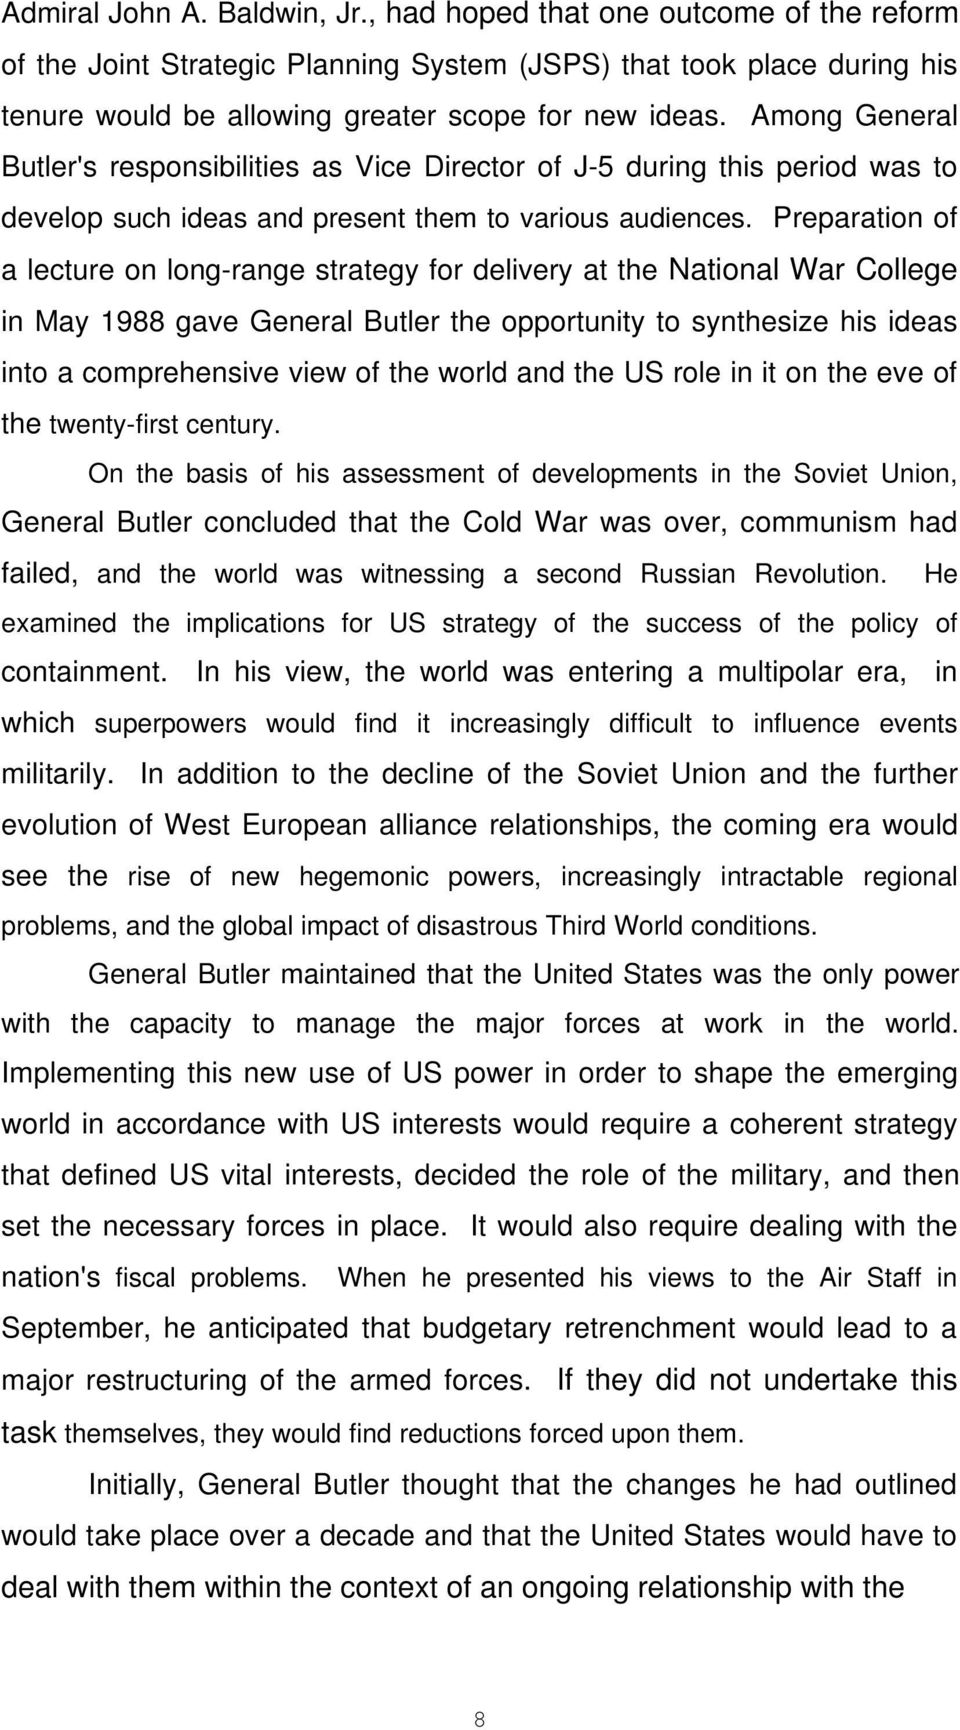 Preparation of a lecture on long-range strategy for delivery at the National War College in May 1988 gave General Butler the opportunity to synthesize his ideas into a comprehensive view of the world